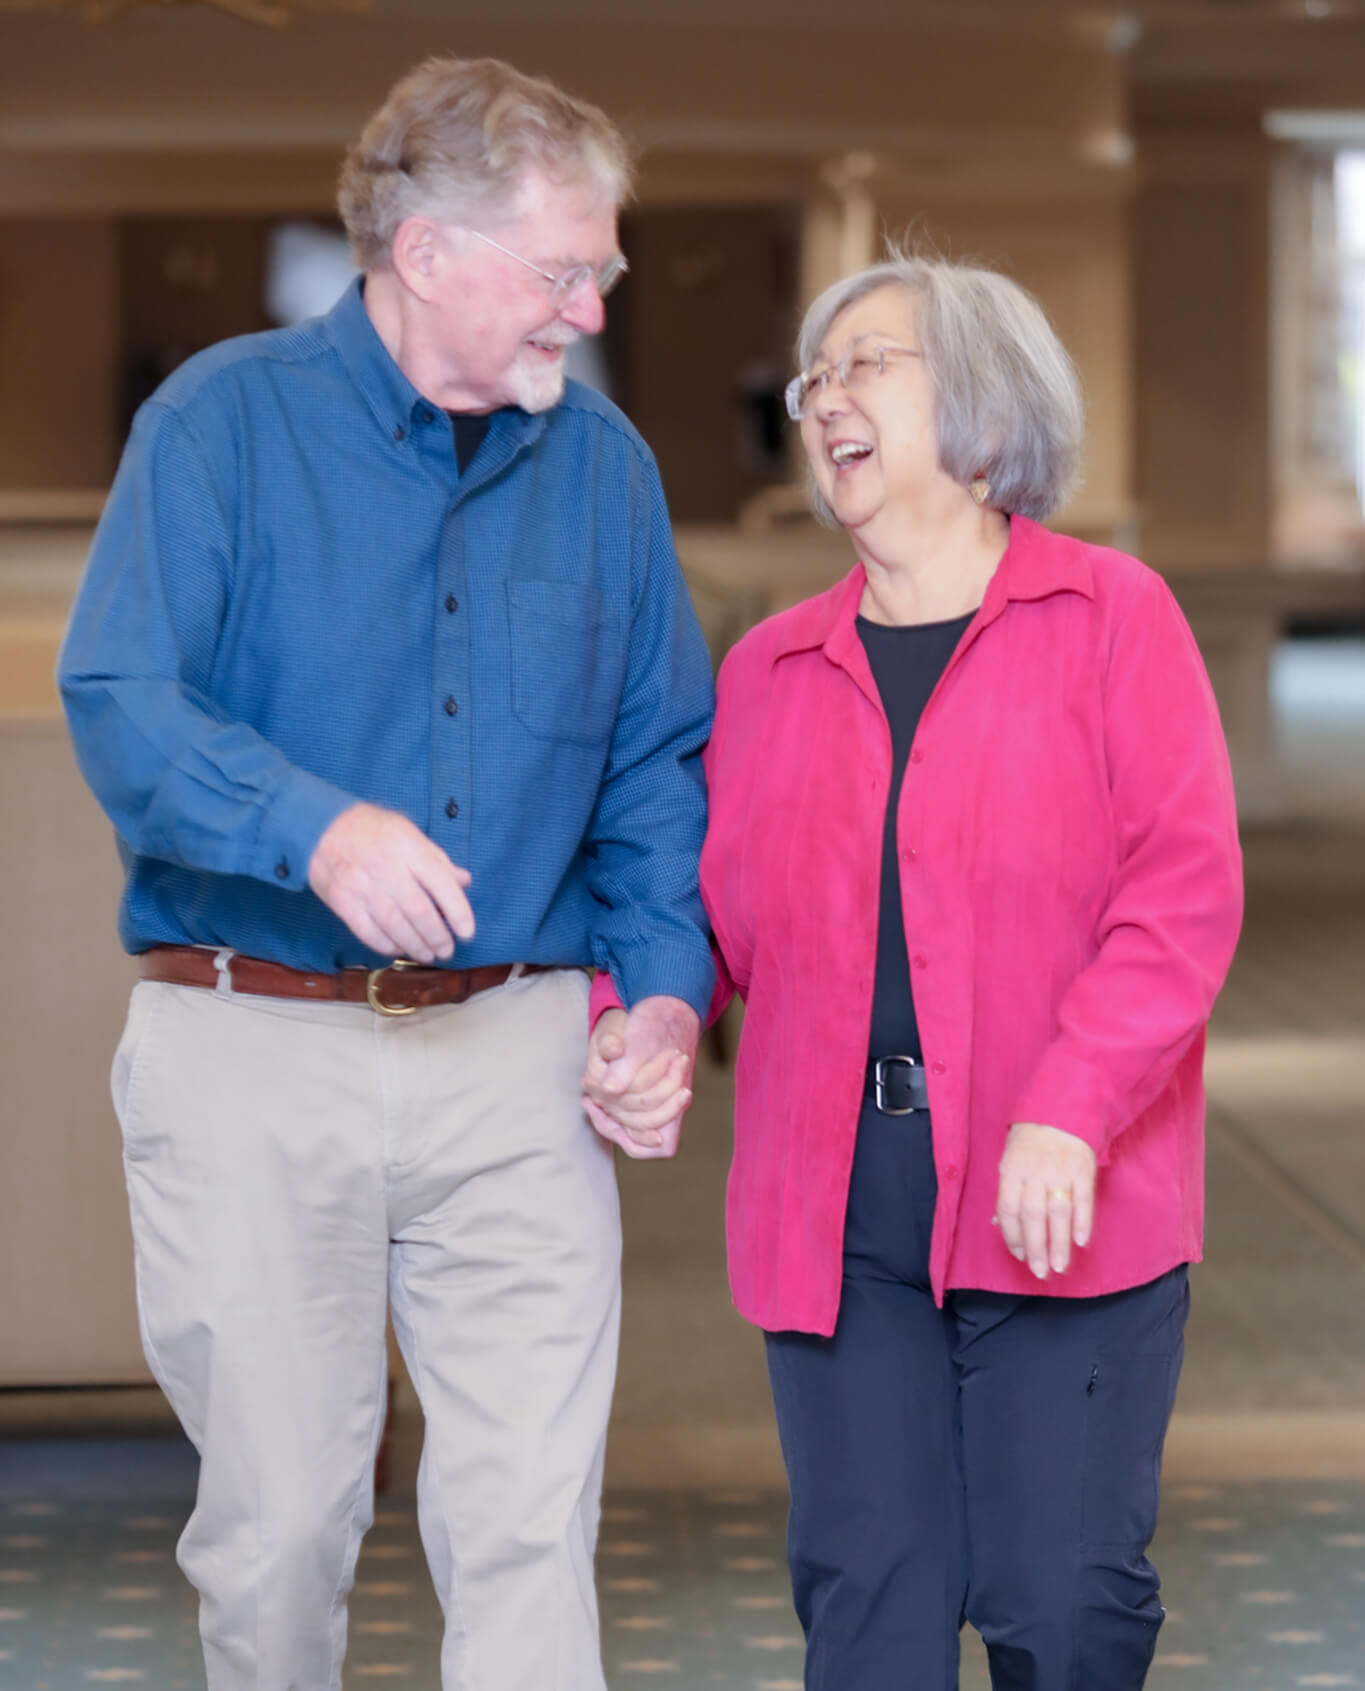 Margie Yamamoto and Mark Hopkins Holding Hands and Laughing